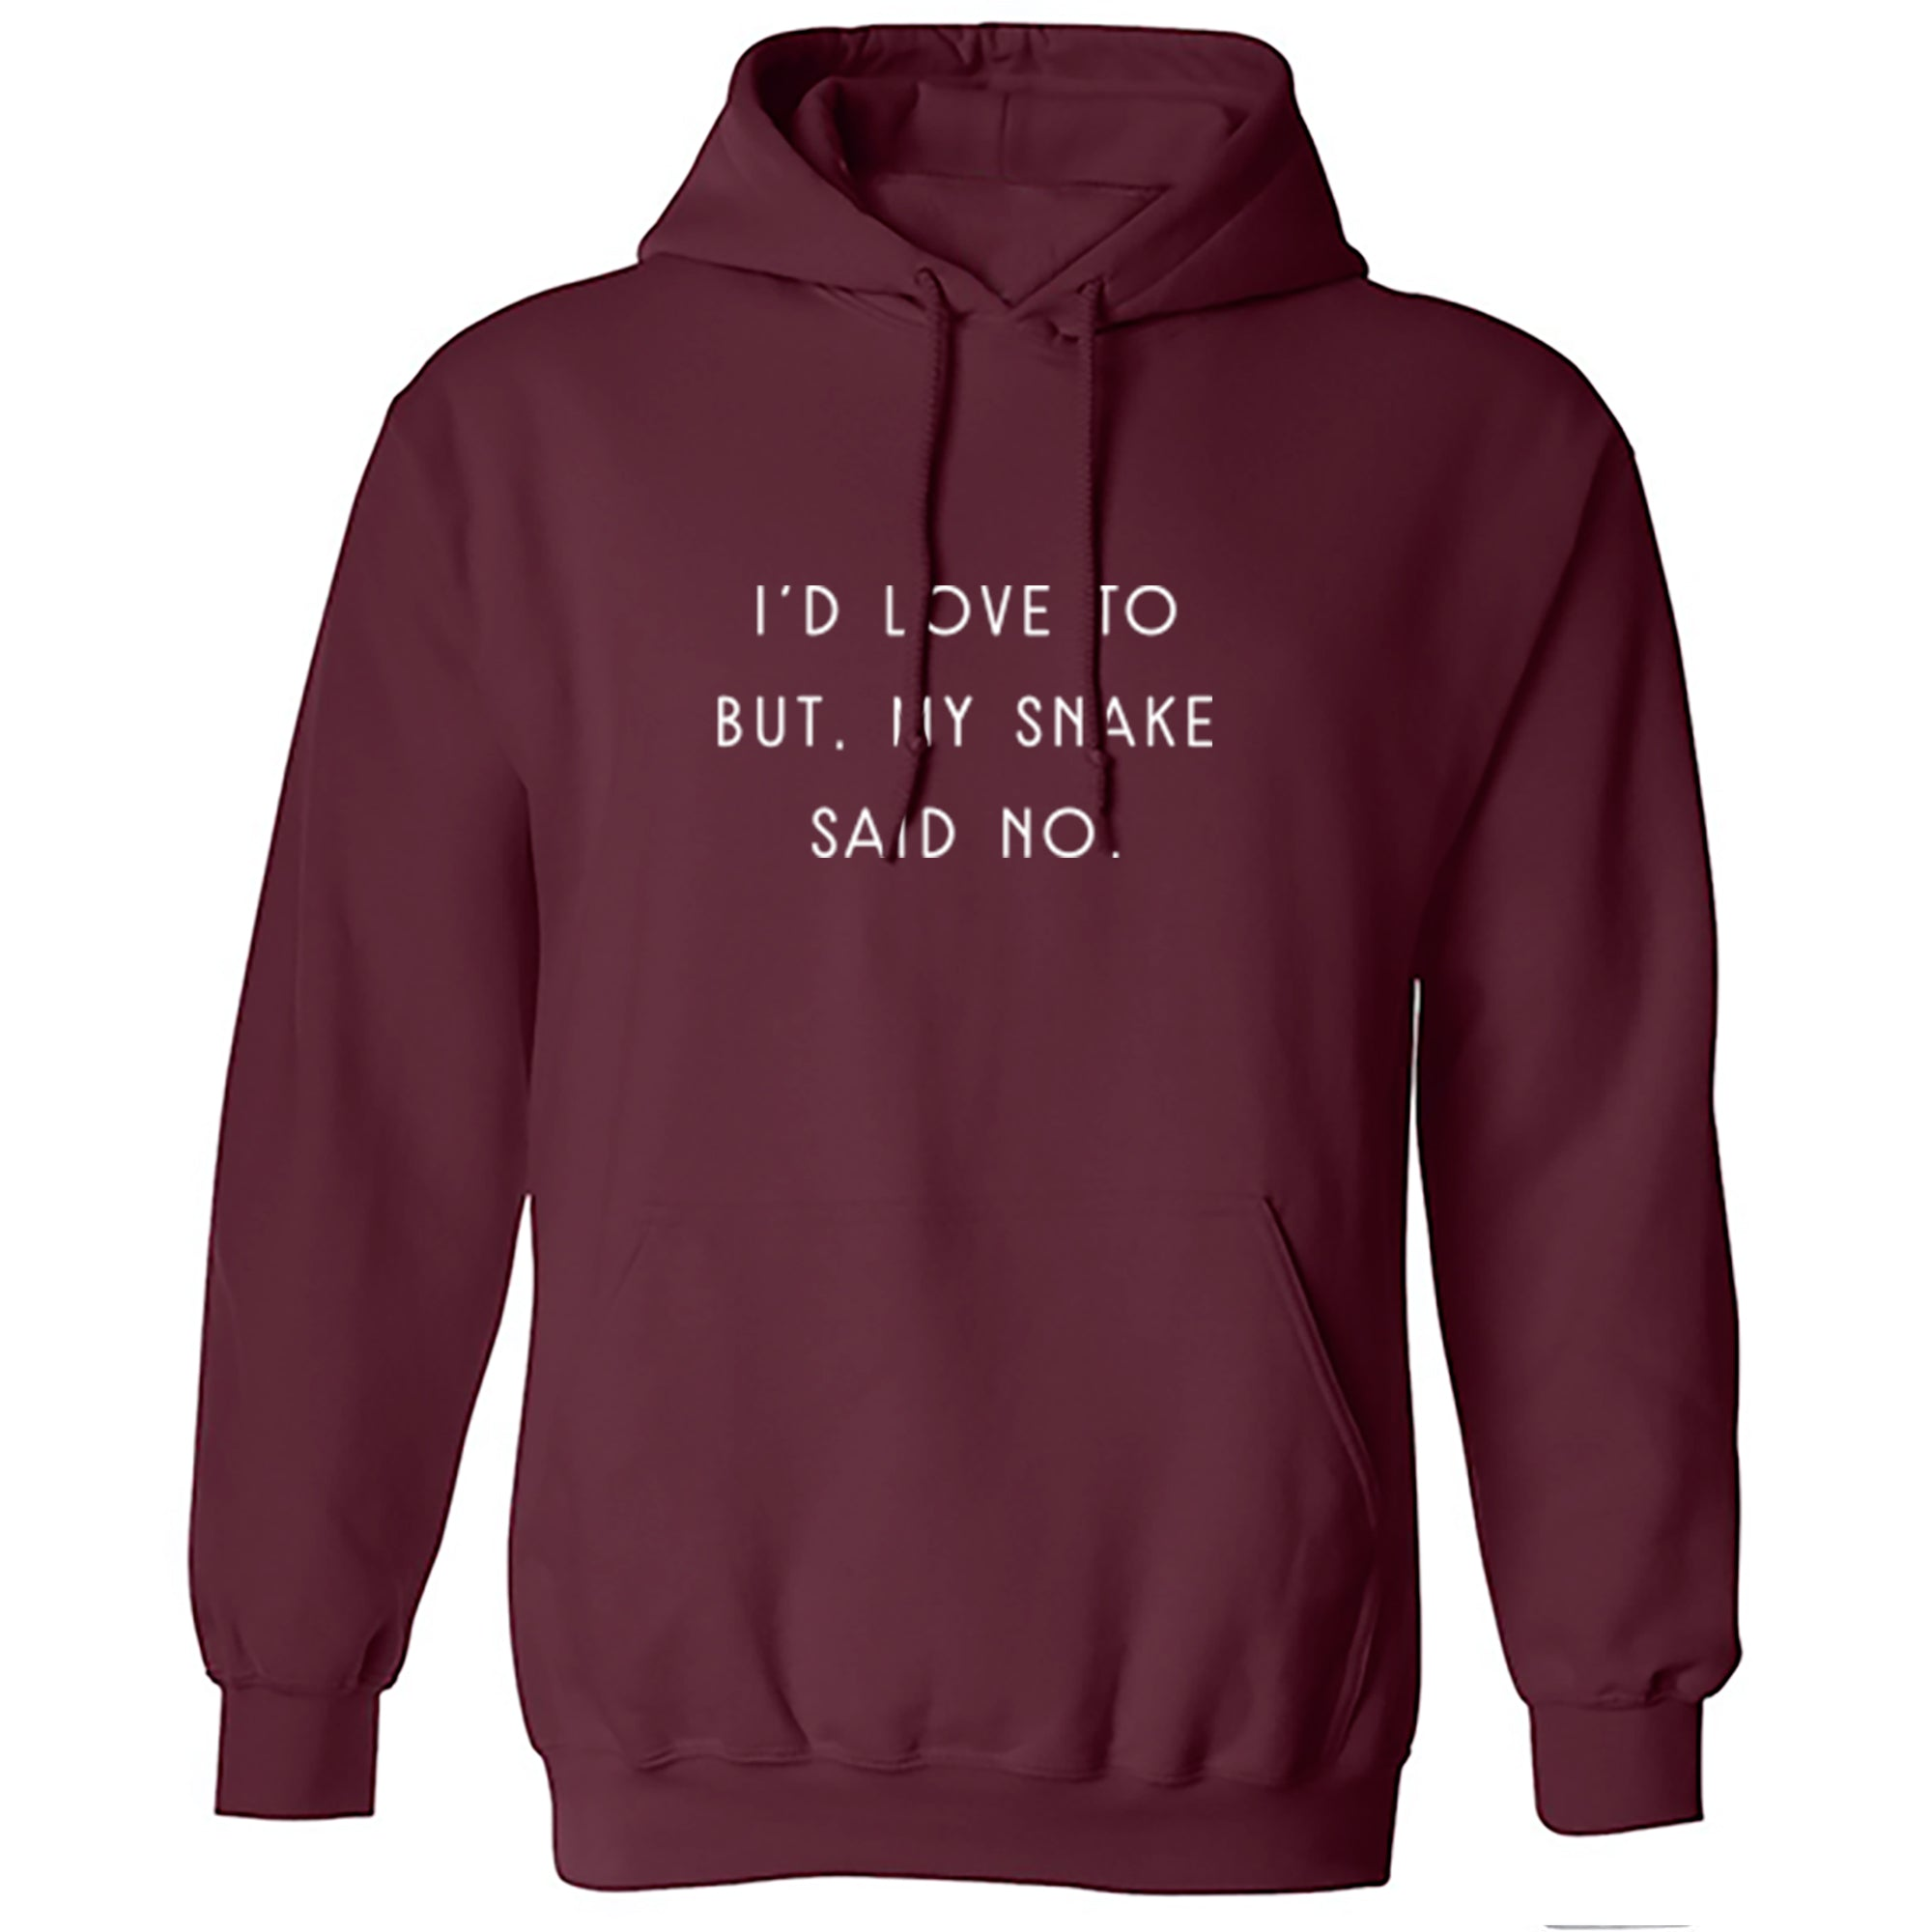 I'd Love To But, My Snake Said No Unisex Hoodie S1067 - Illustrated Identity Ltd.